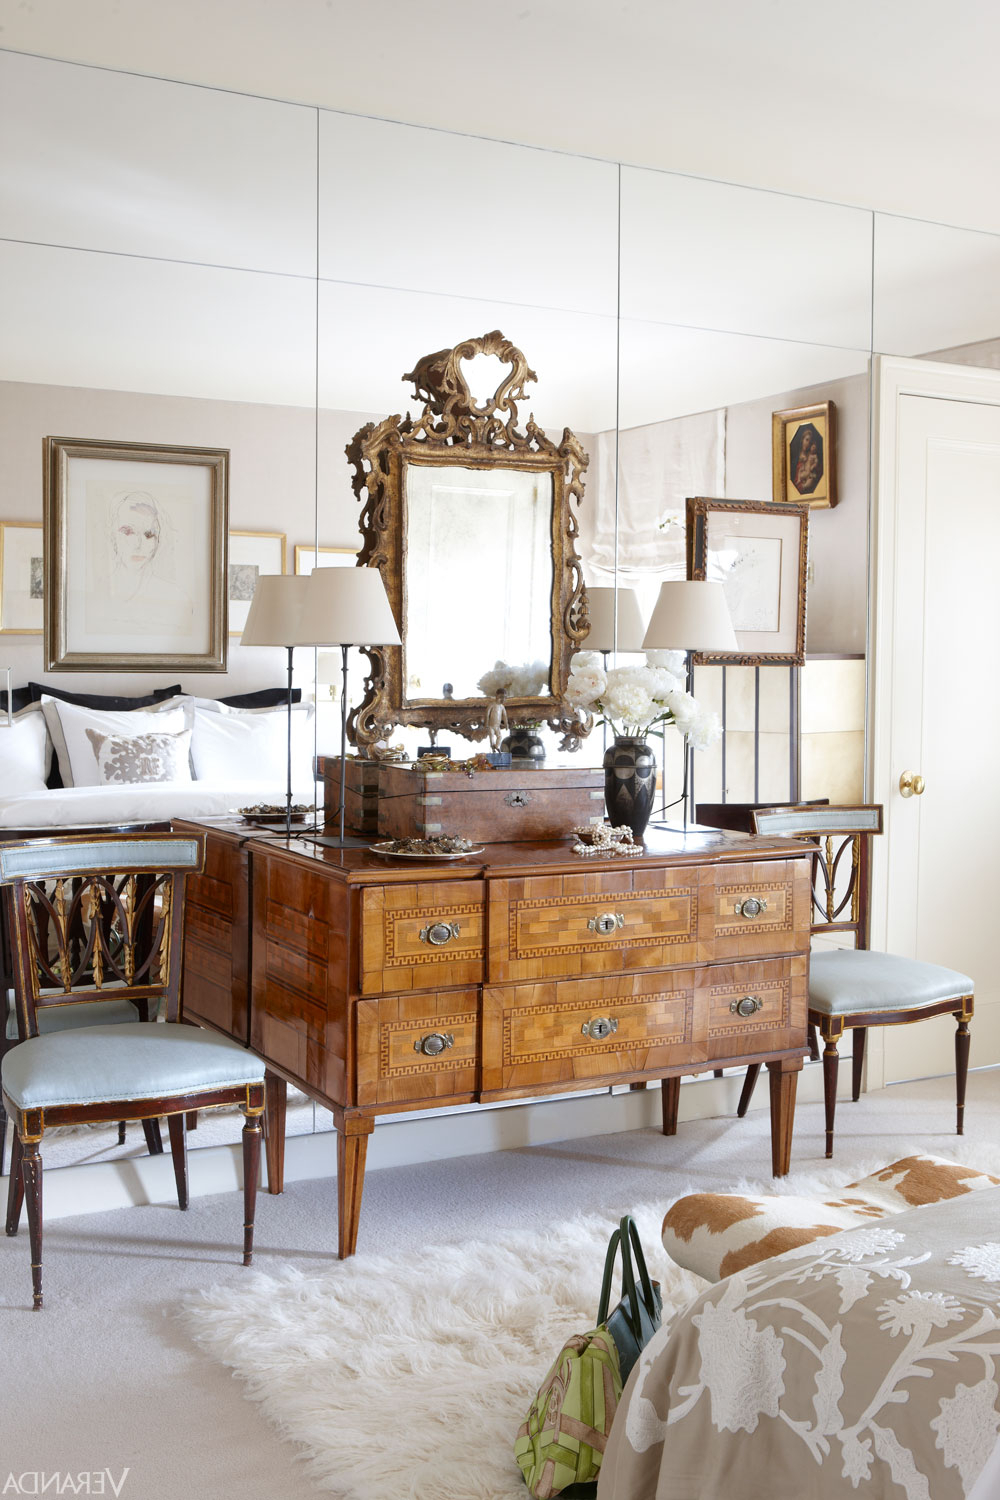 Plagued With Dated Mirrored Walls? 5 Design Ideas To Make For Most Recently Released Wall Mirrors Designs (View 13 of 20)